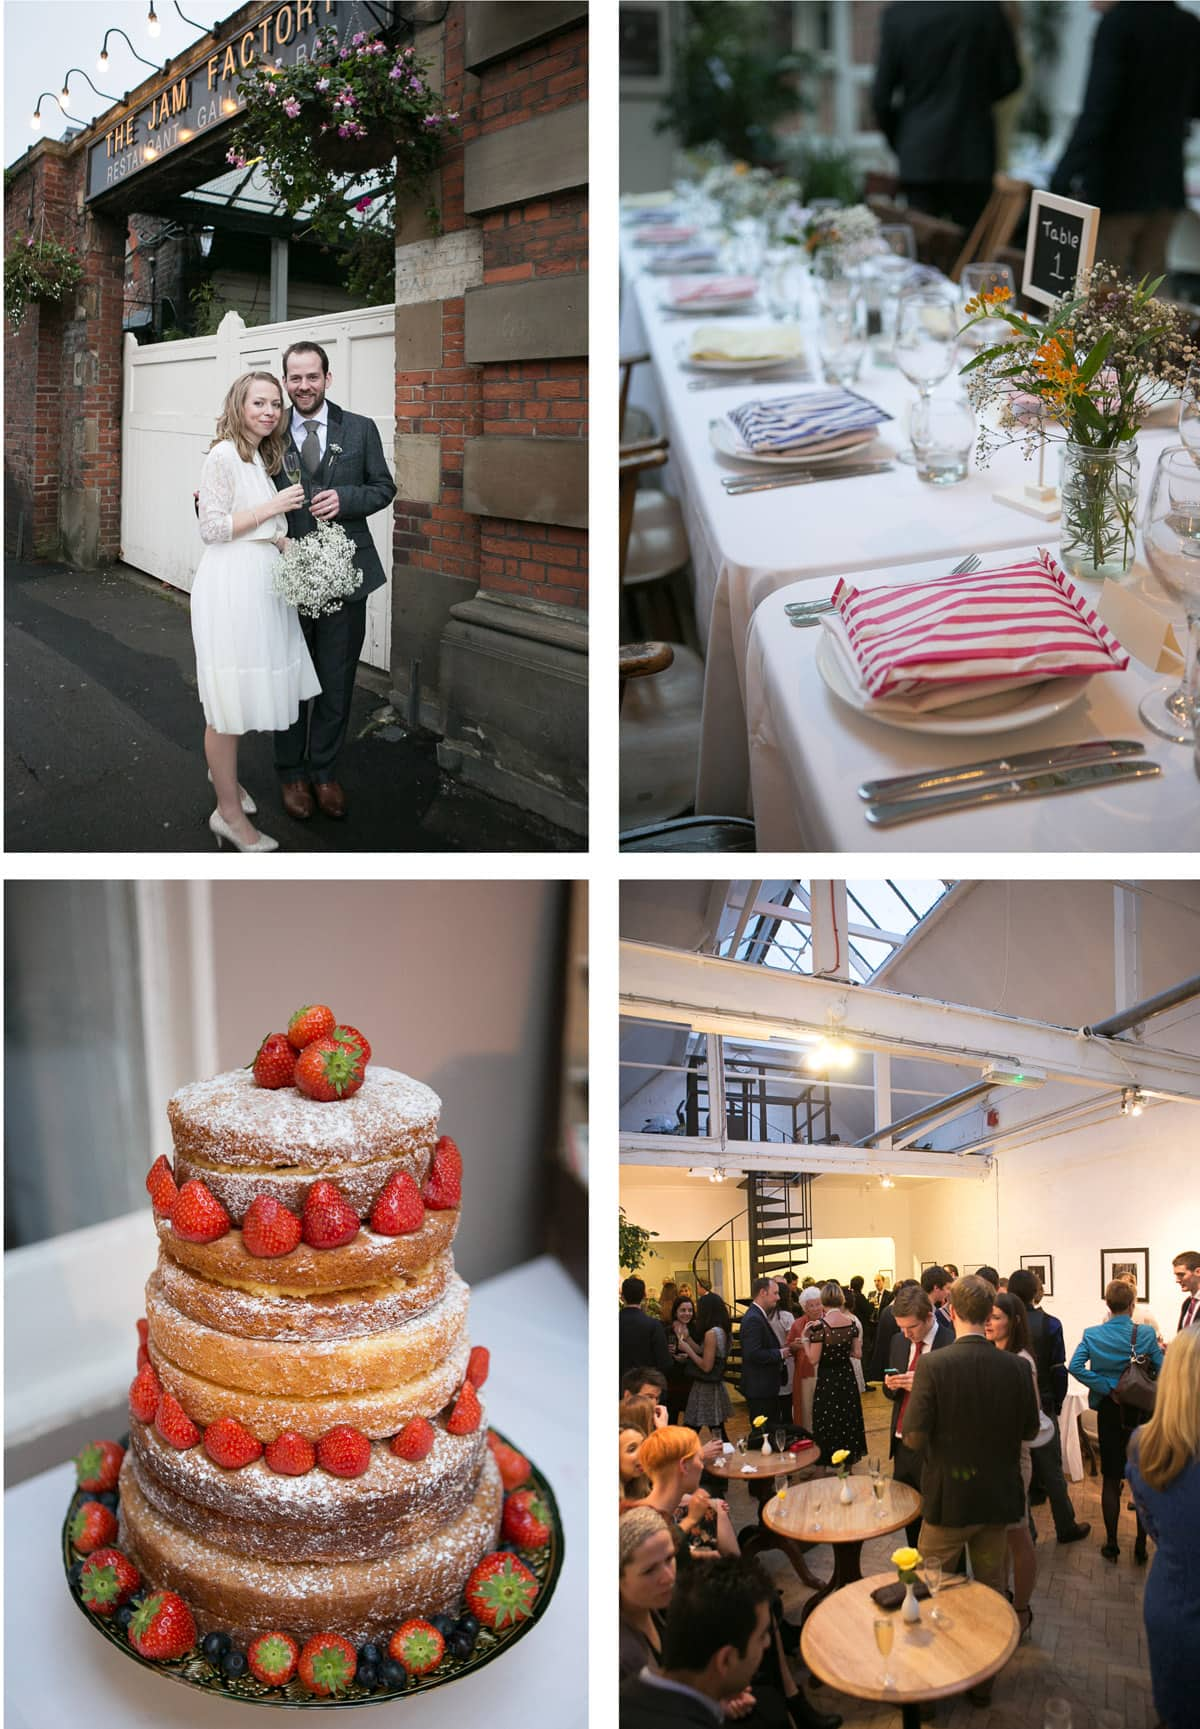 Collage of images of a wedding at Oxford's The Jam Factory